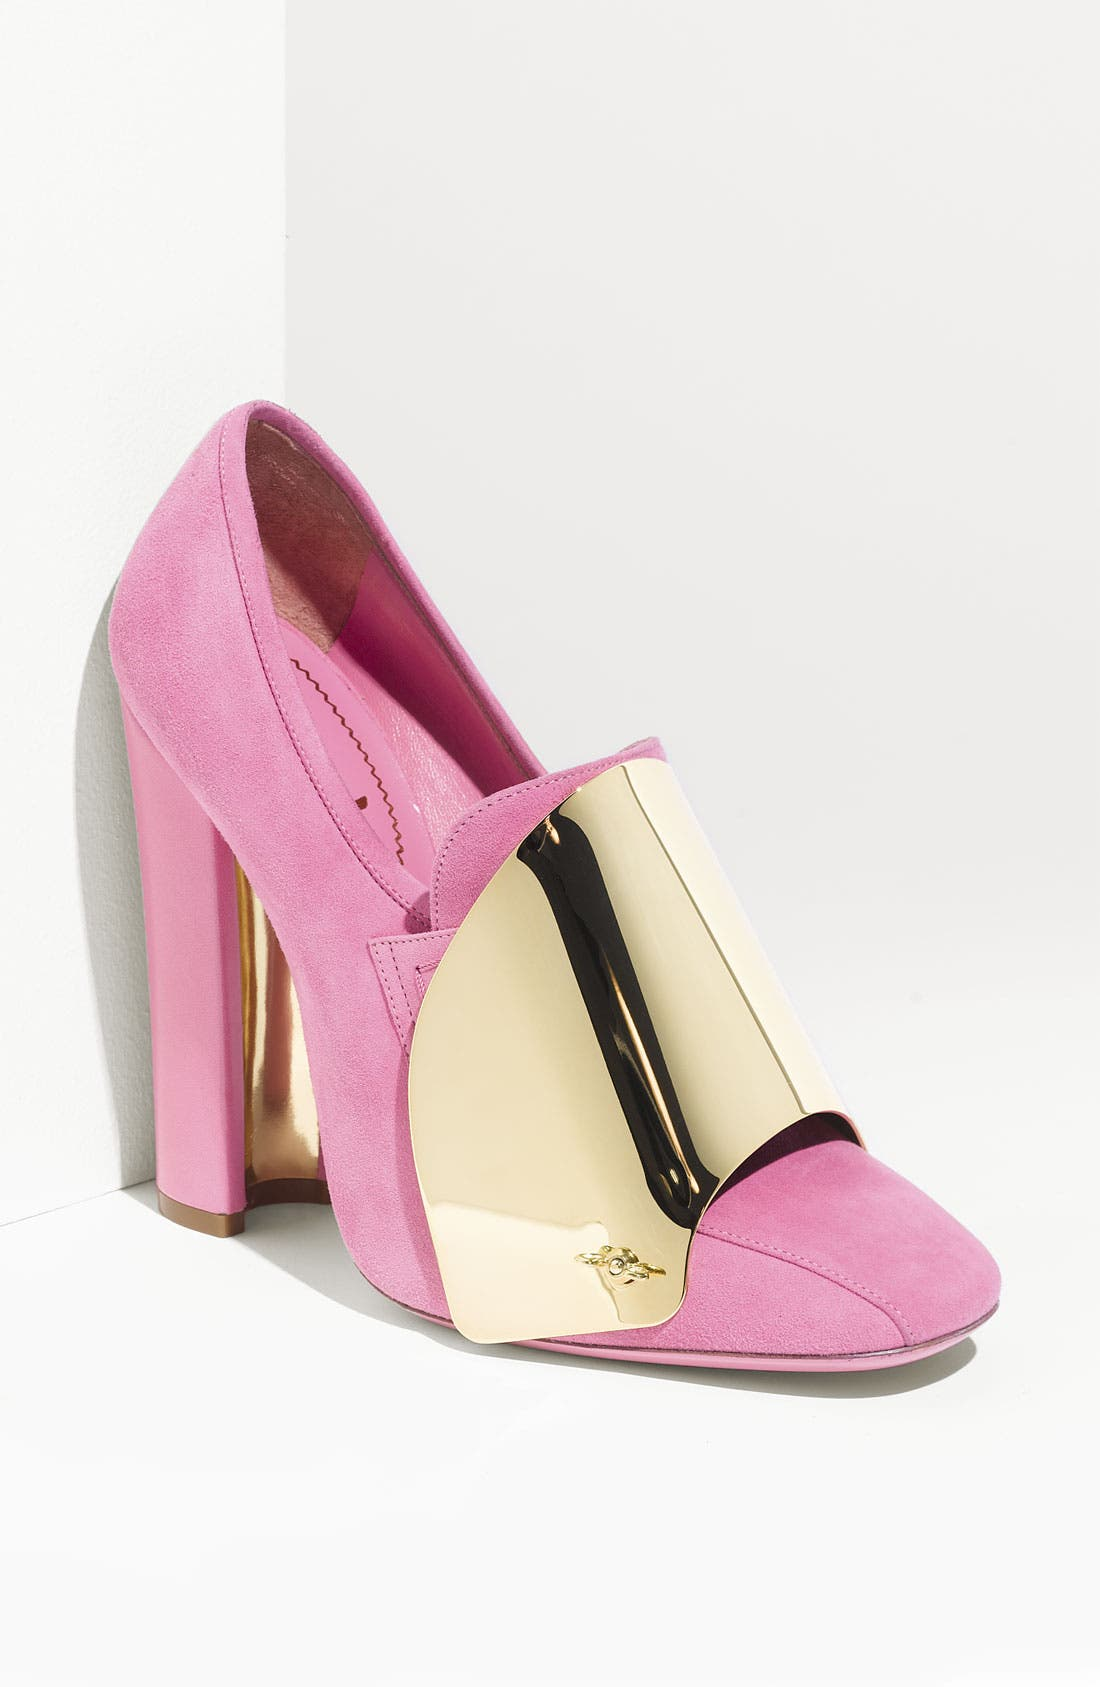 Alternate Image 1 Selected - Yves Saint Laurent 'Shield' Loafer Pump